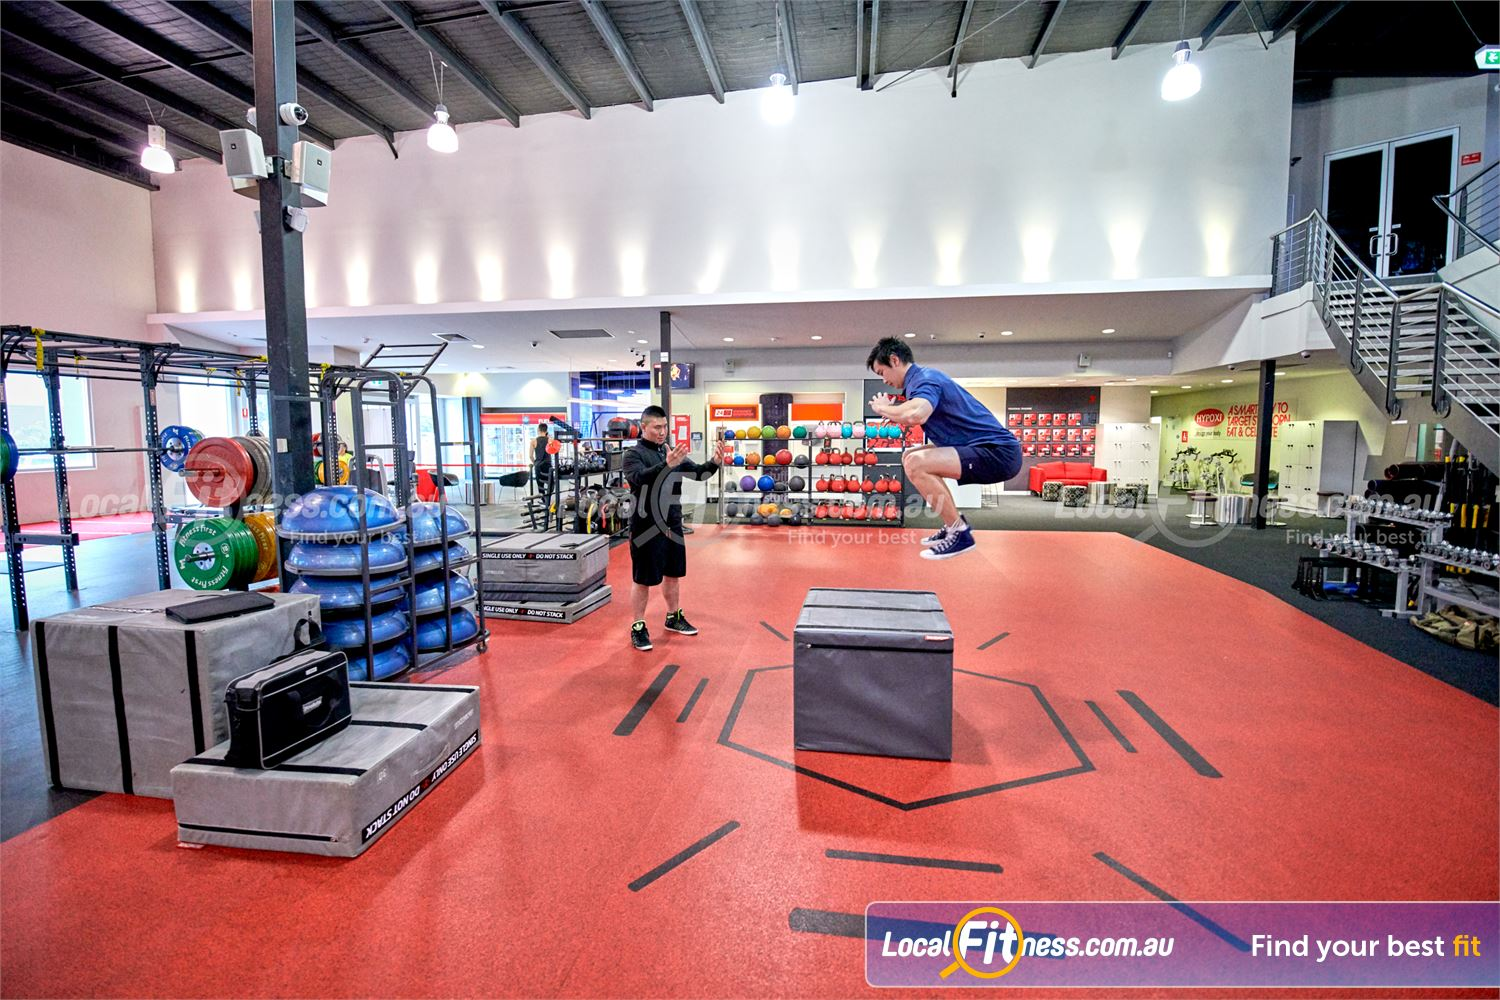 Fitness First Near Wheelers Hill Try some plyometric box jumps in our freestyle area.